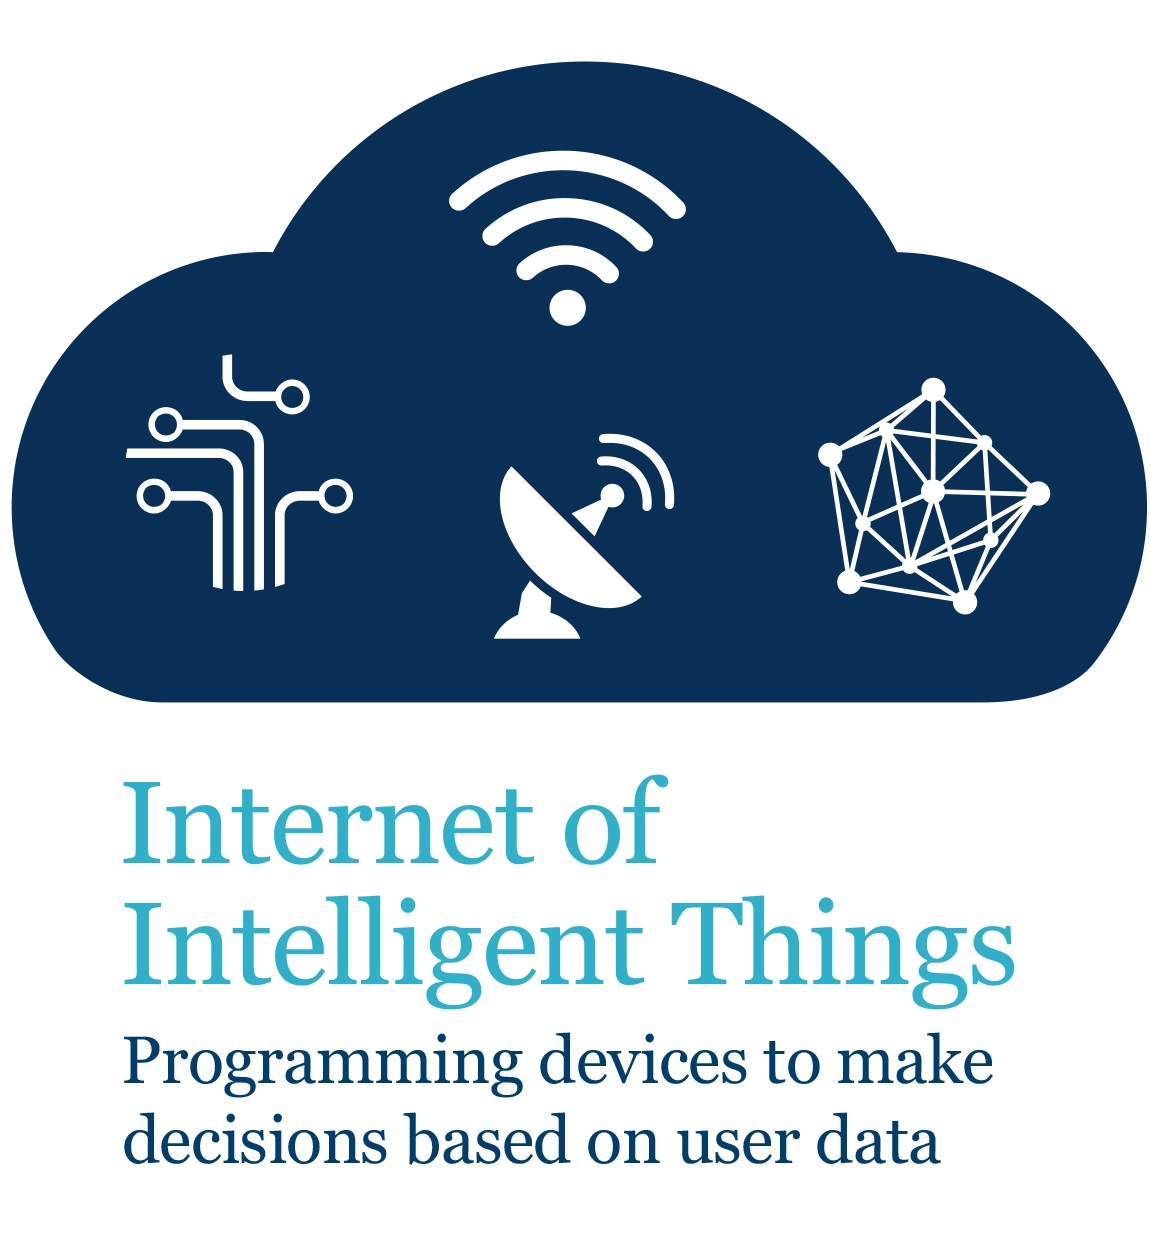 Internet of Intelligent Things